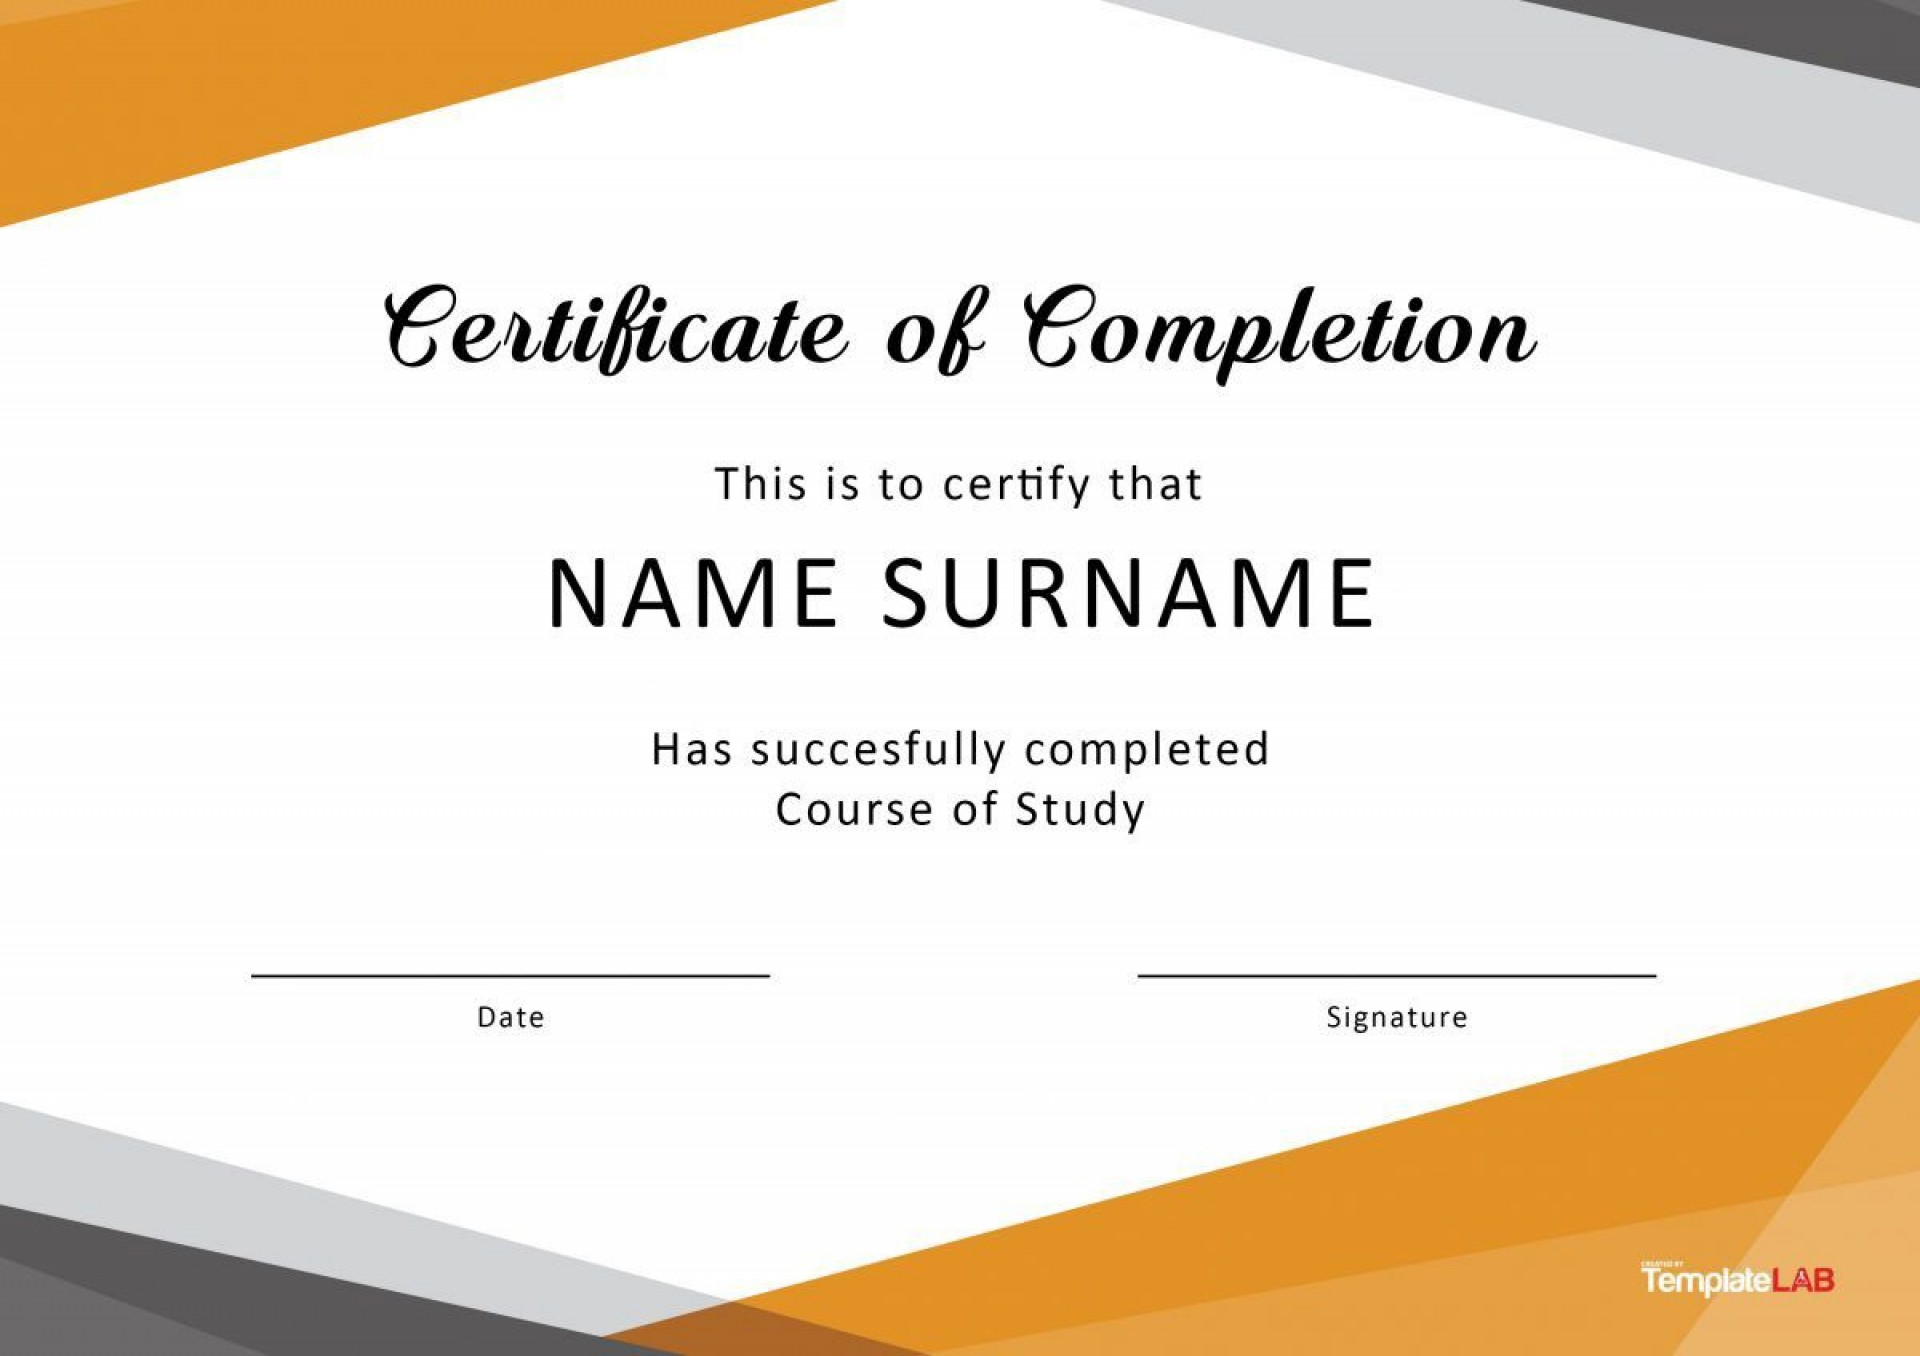 005 Stirring Free Certificate Template Word Image  Blank For Microsoft Award Border Download1920